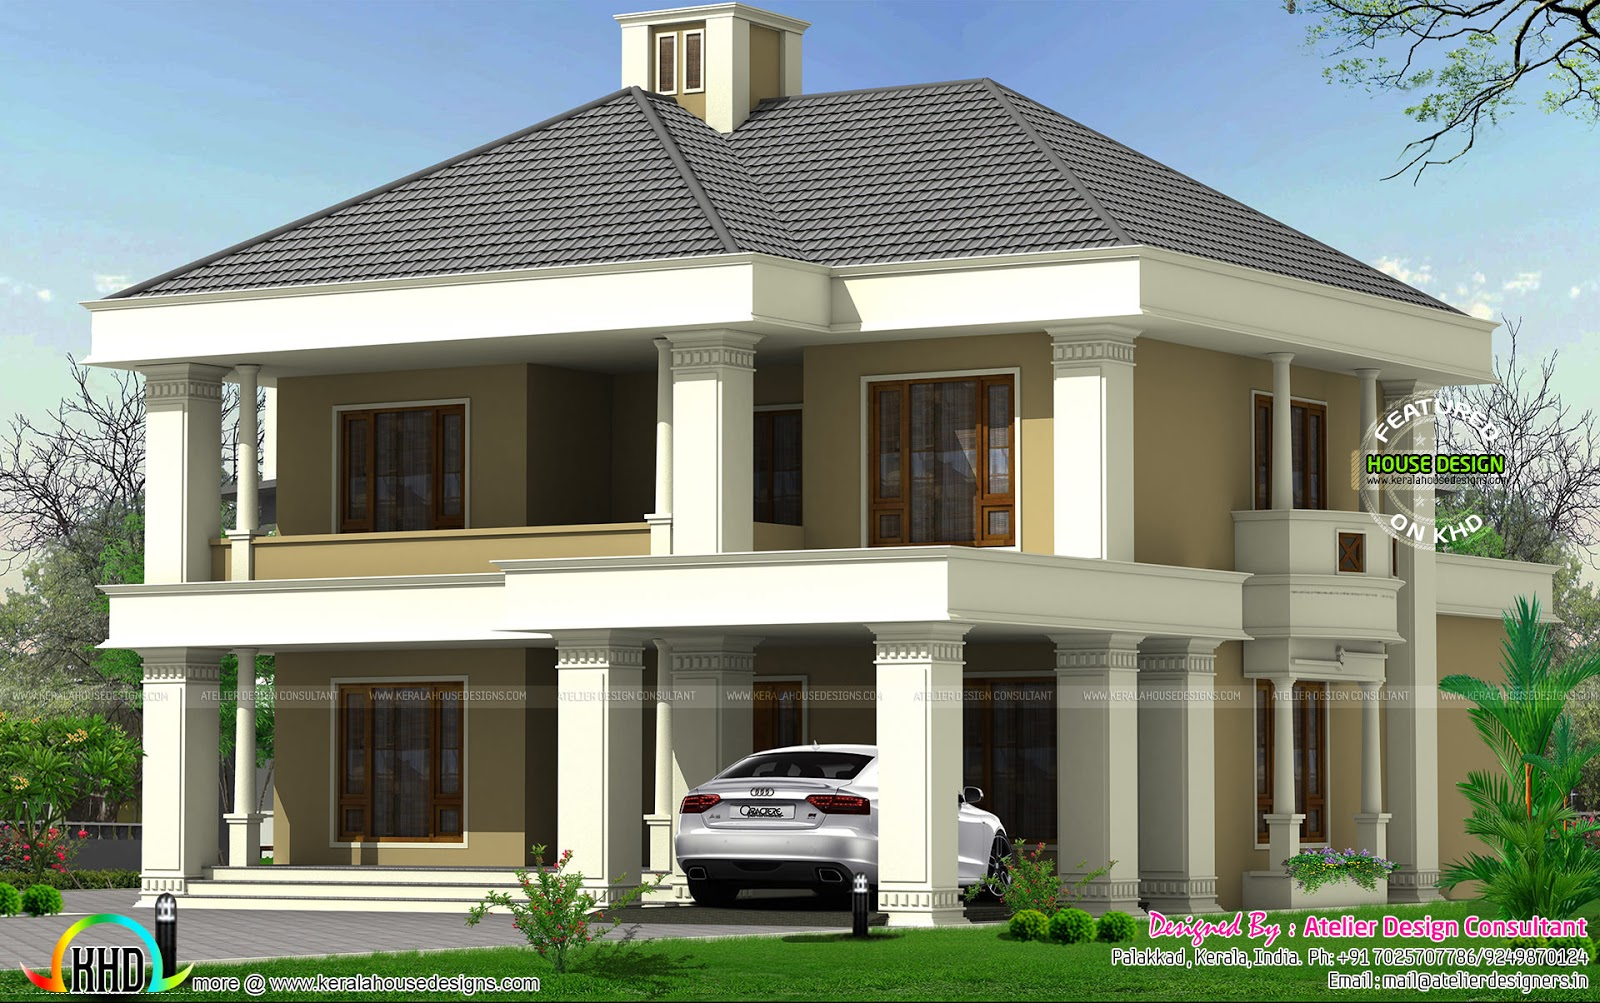 Colonial model house in 2000 sq ft. April 2016   Kerala home design and floor plans